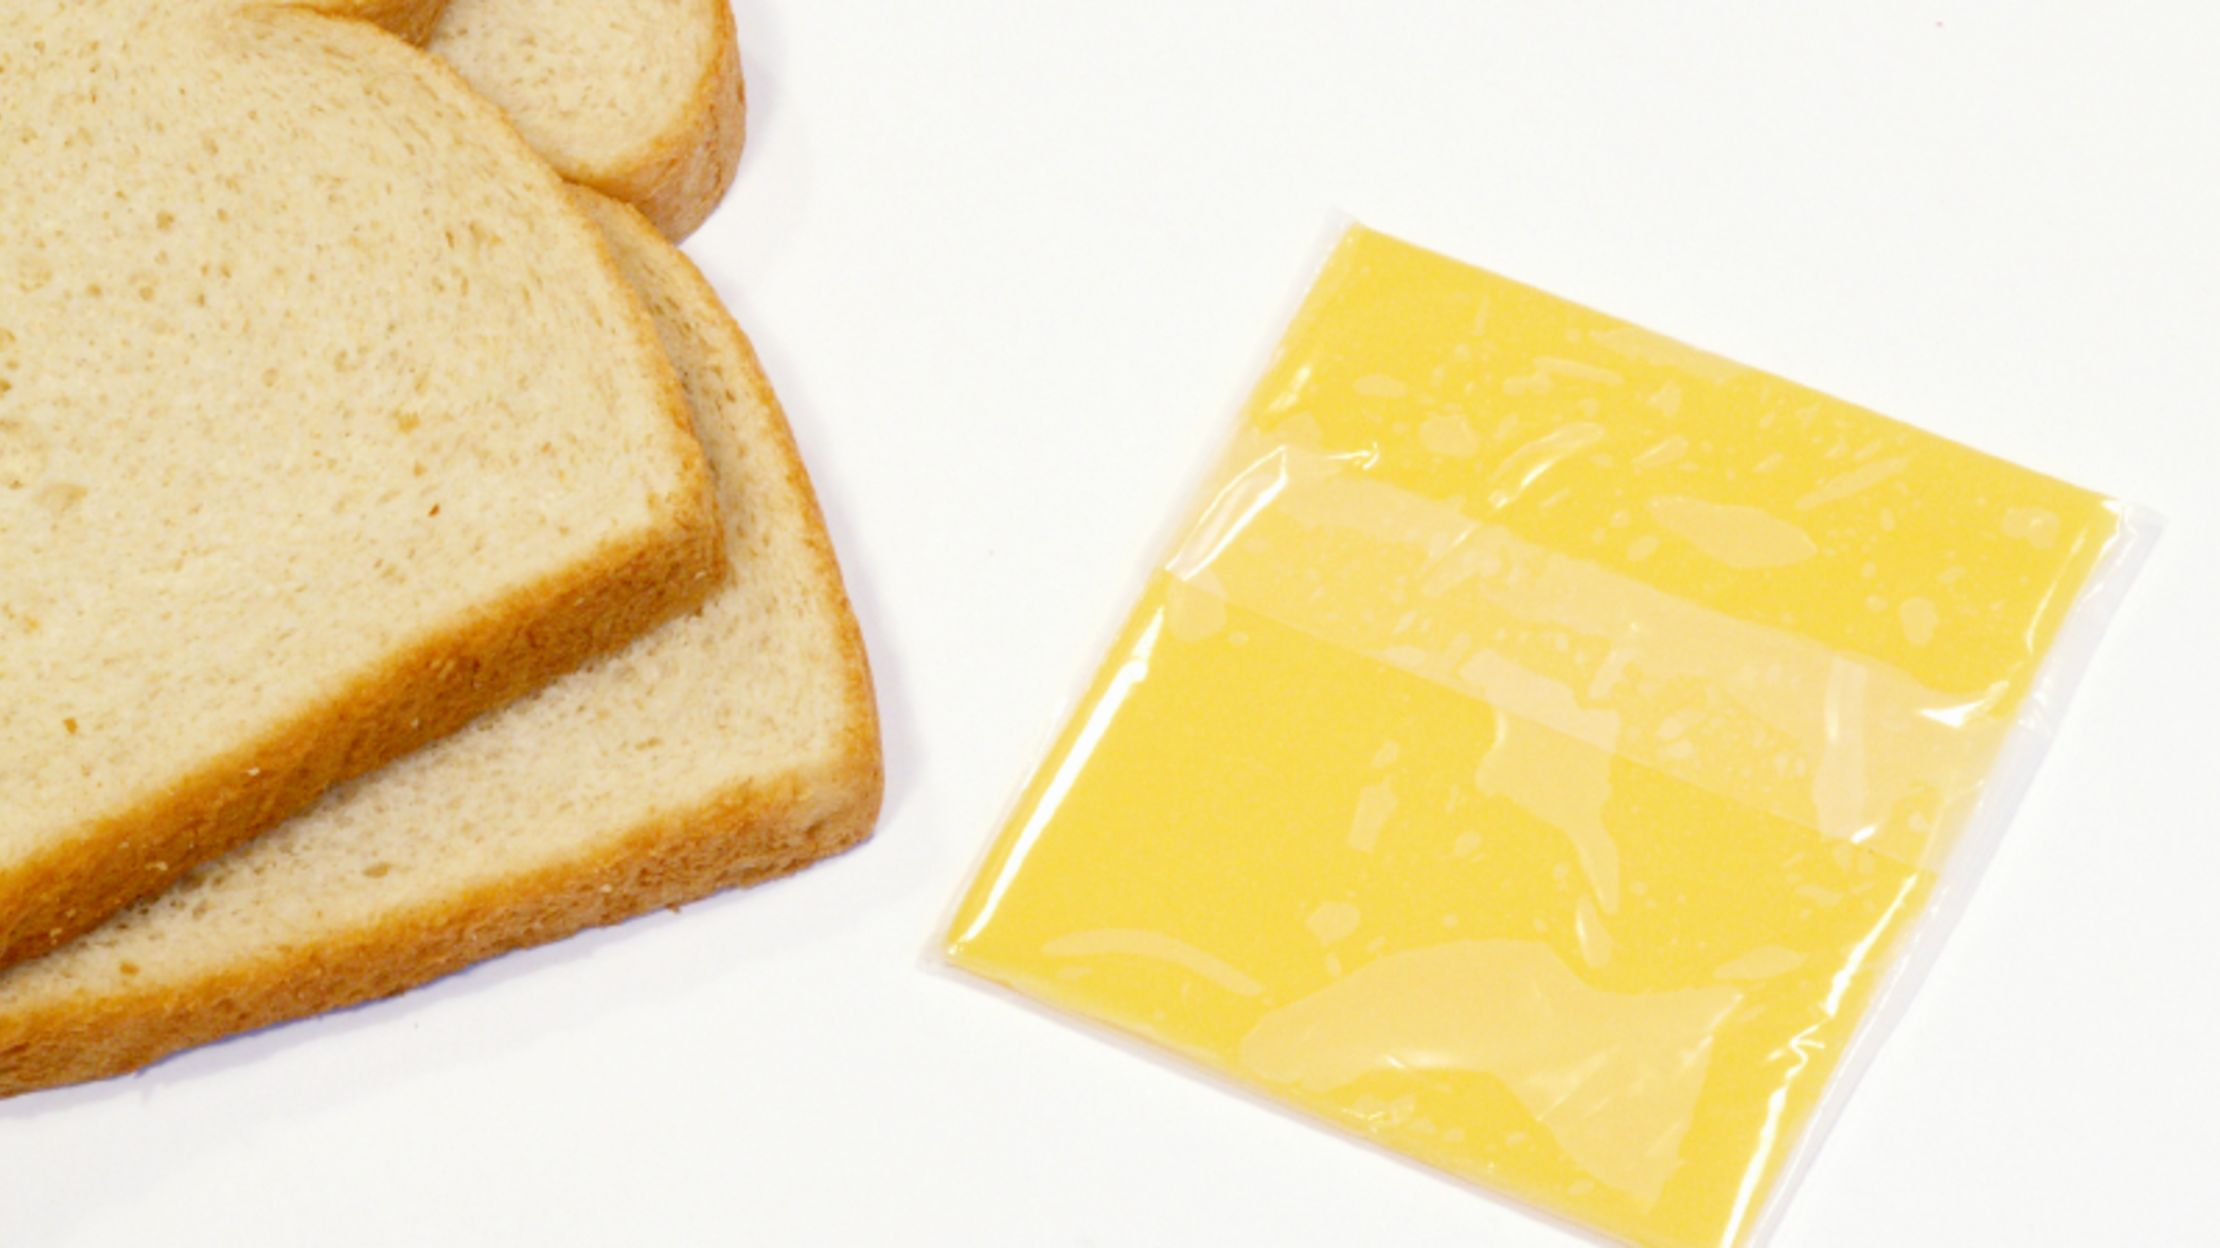 What Exactly is American Cheese? | Mental Floss